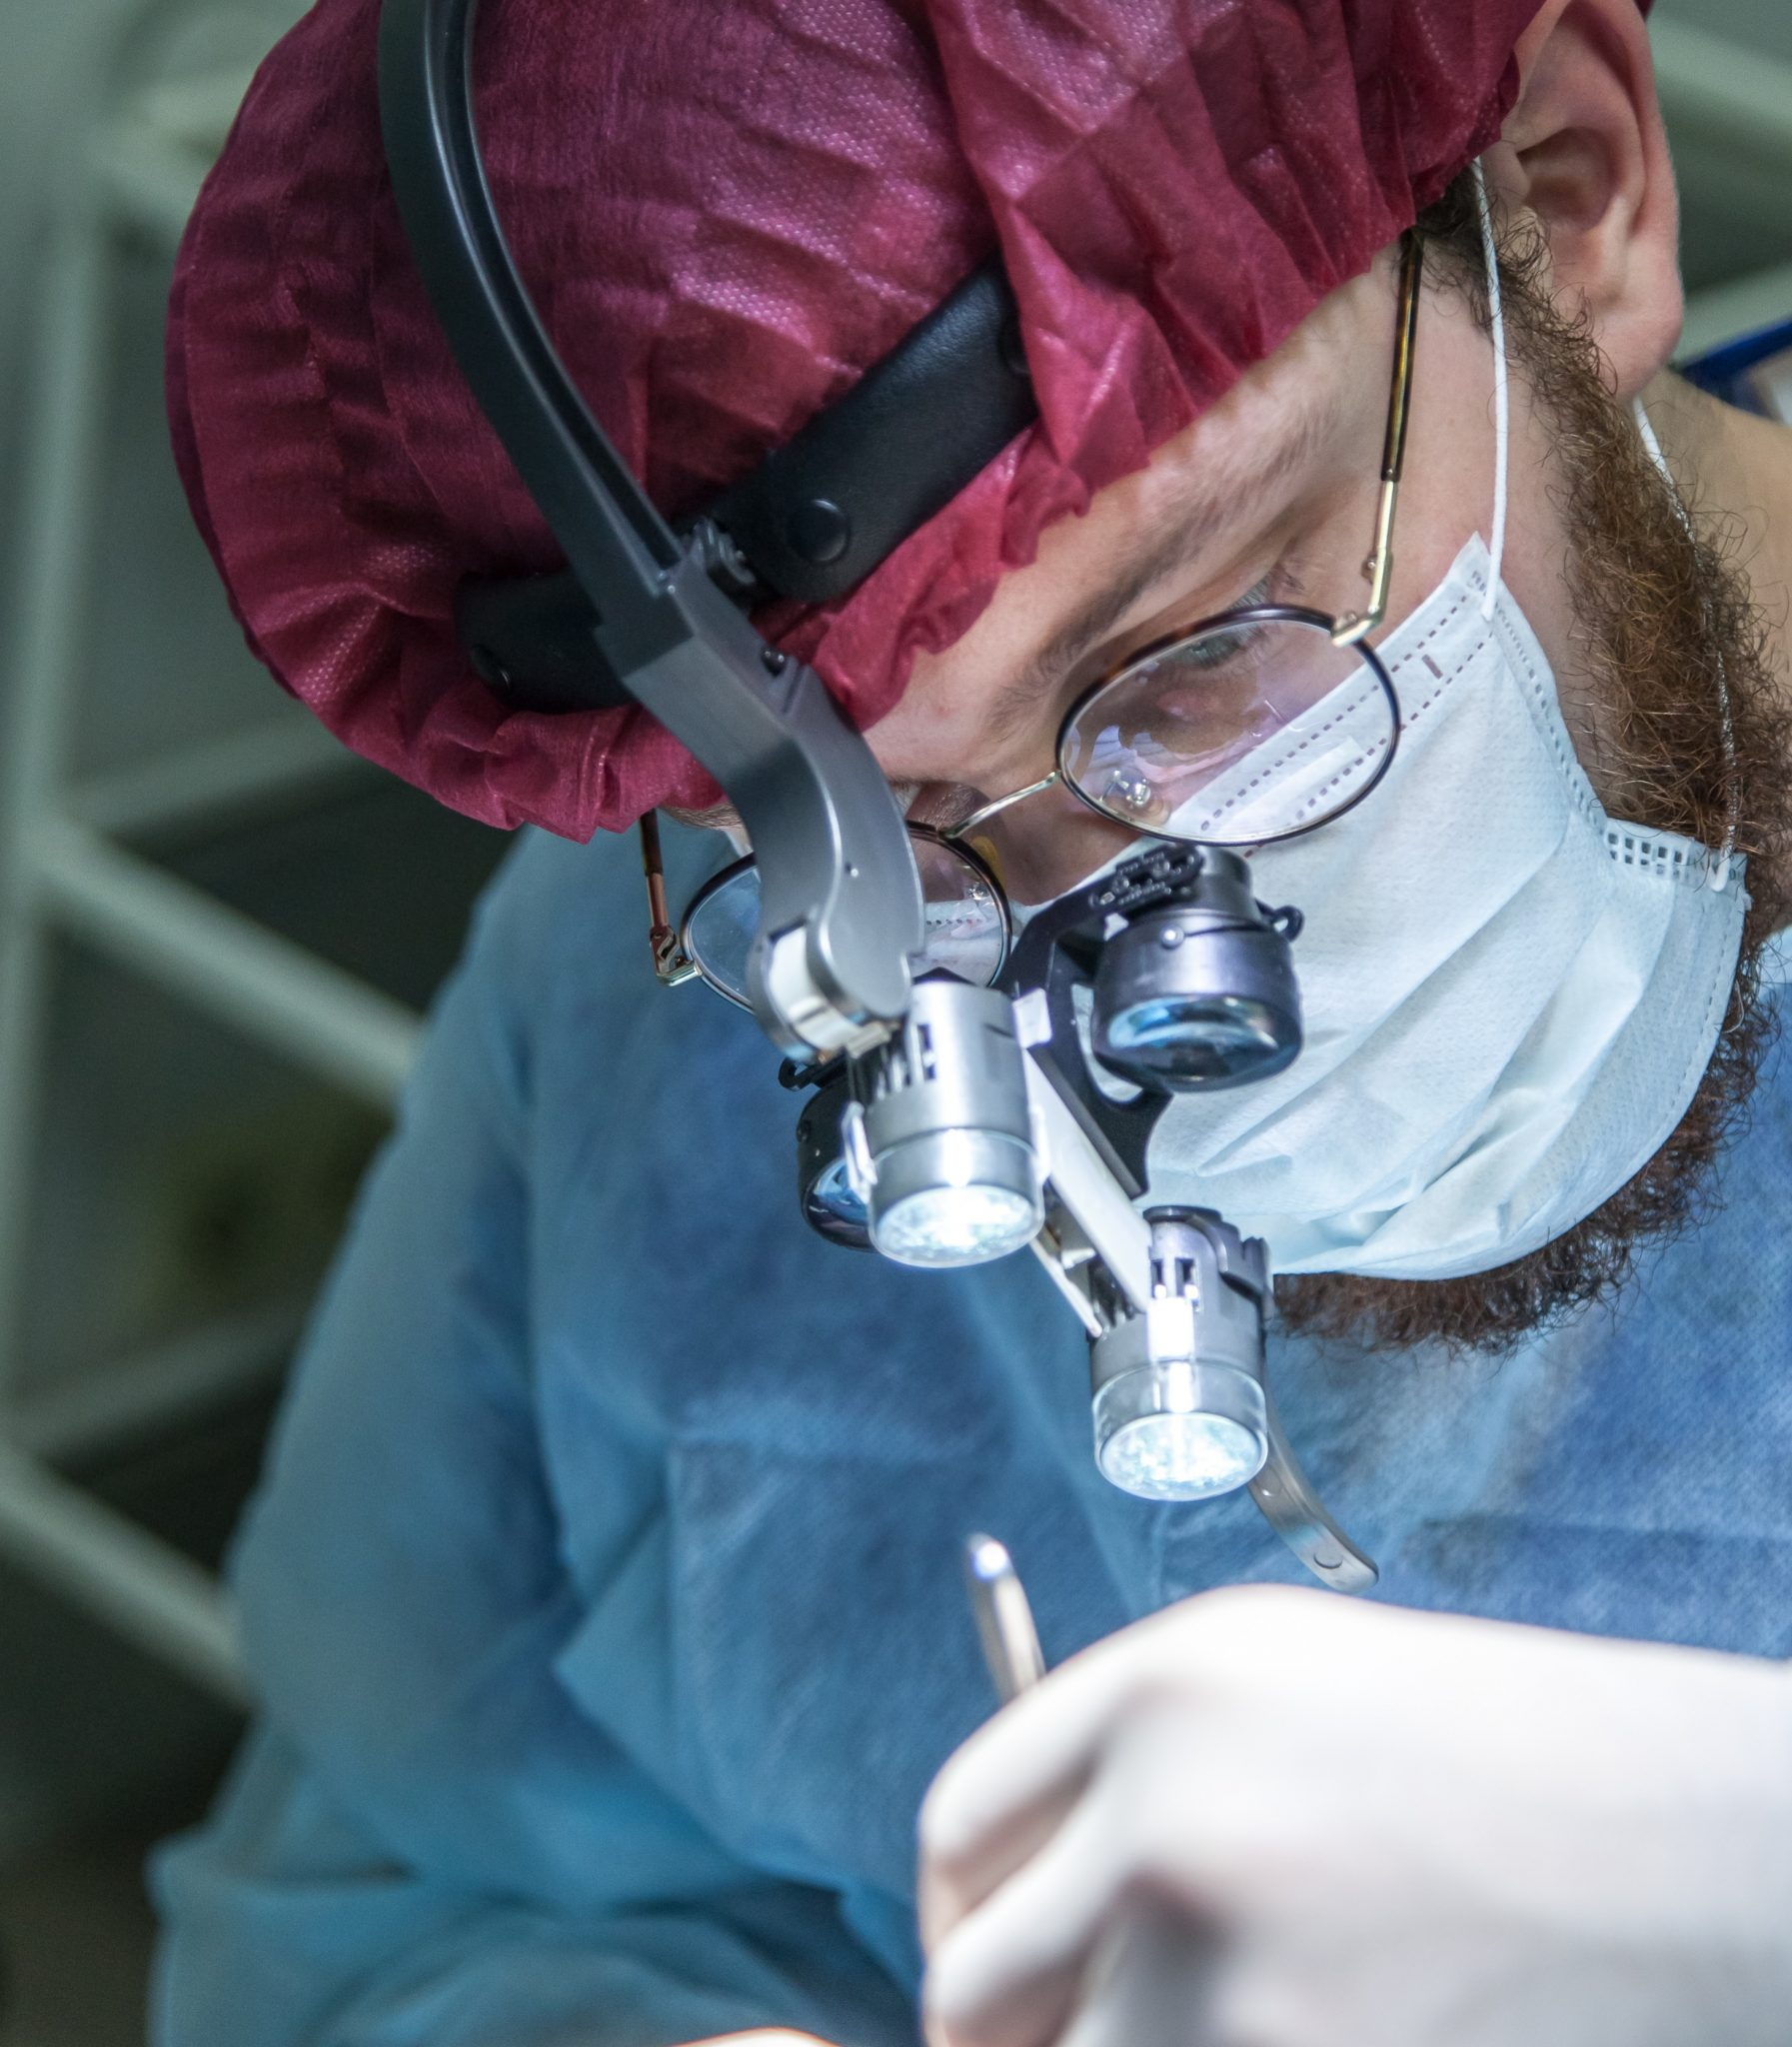 Rhino Surgical Australia sponsor Sydney Endoscopic Ear Surgery Research Group 6th Course